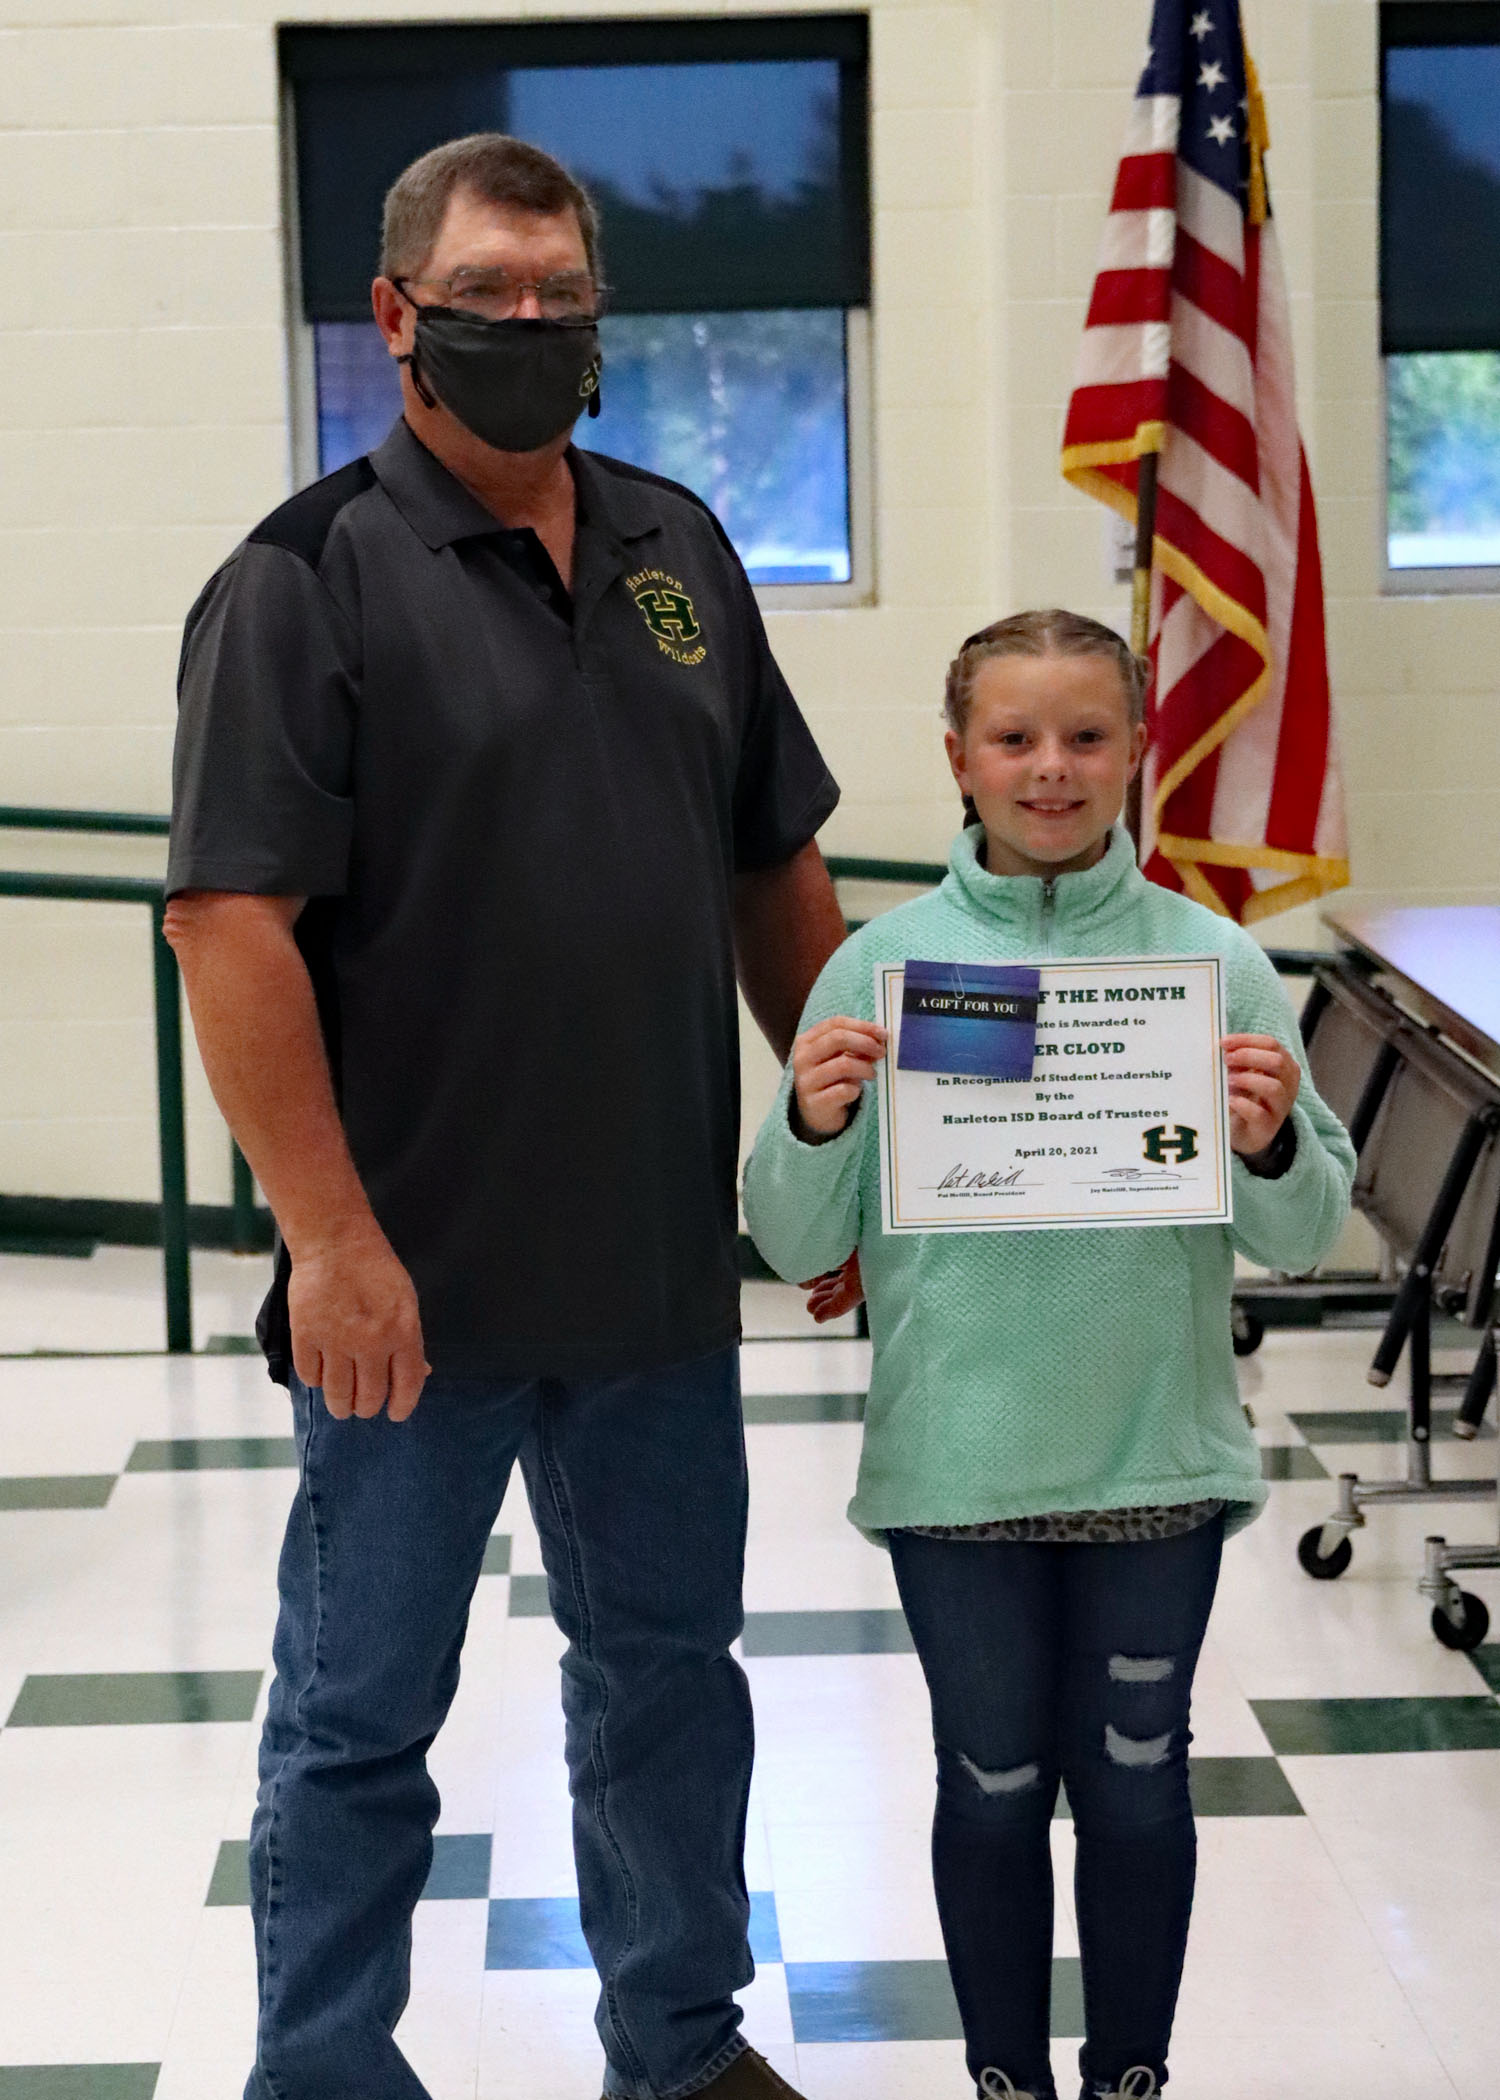 April Student of the Month Harper Cloyd!